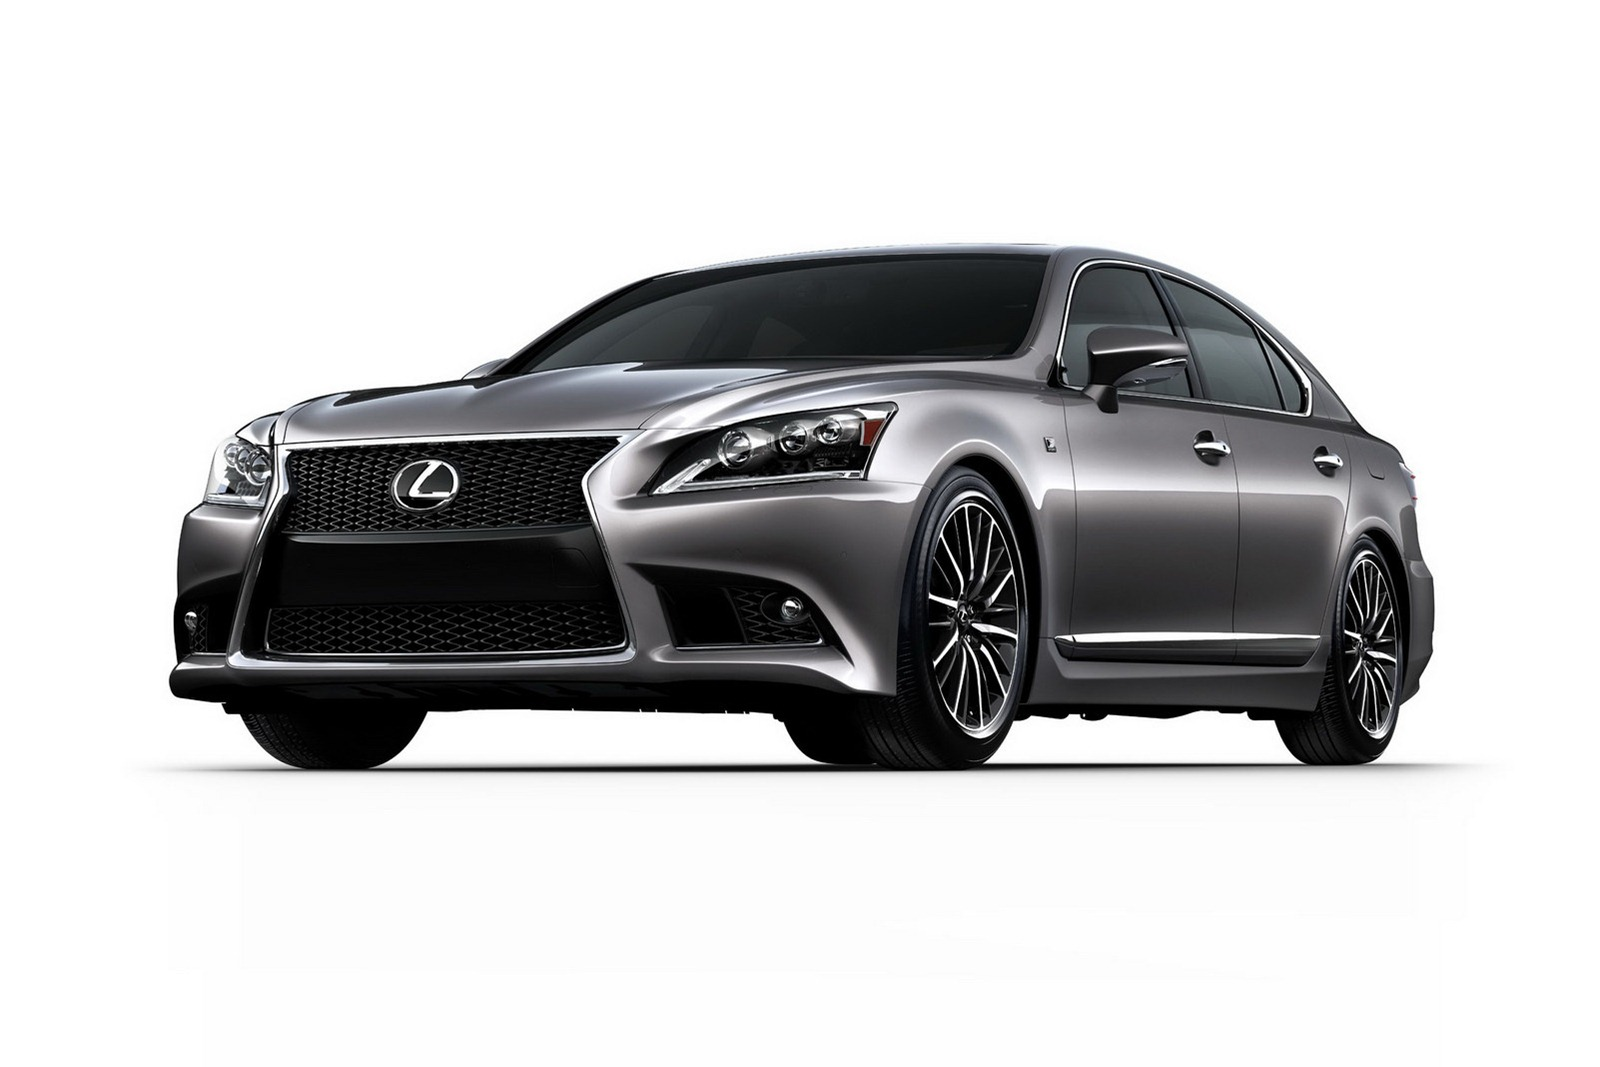 nancys car designs 2013 lexus ls 460 f sport. Black Bedroom Furniture Sets. Home Design Ideas